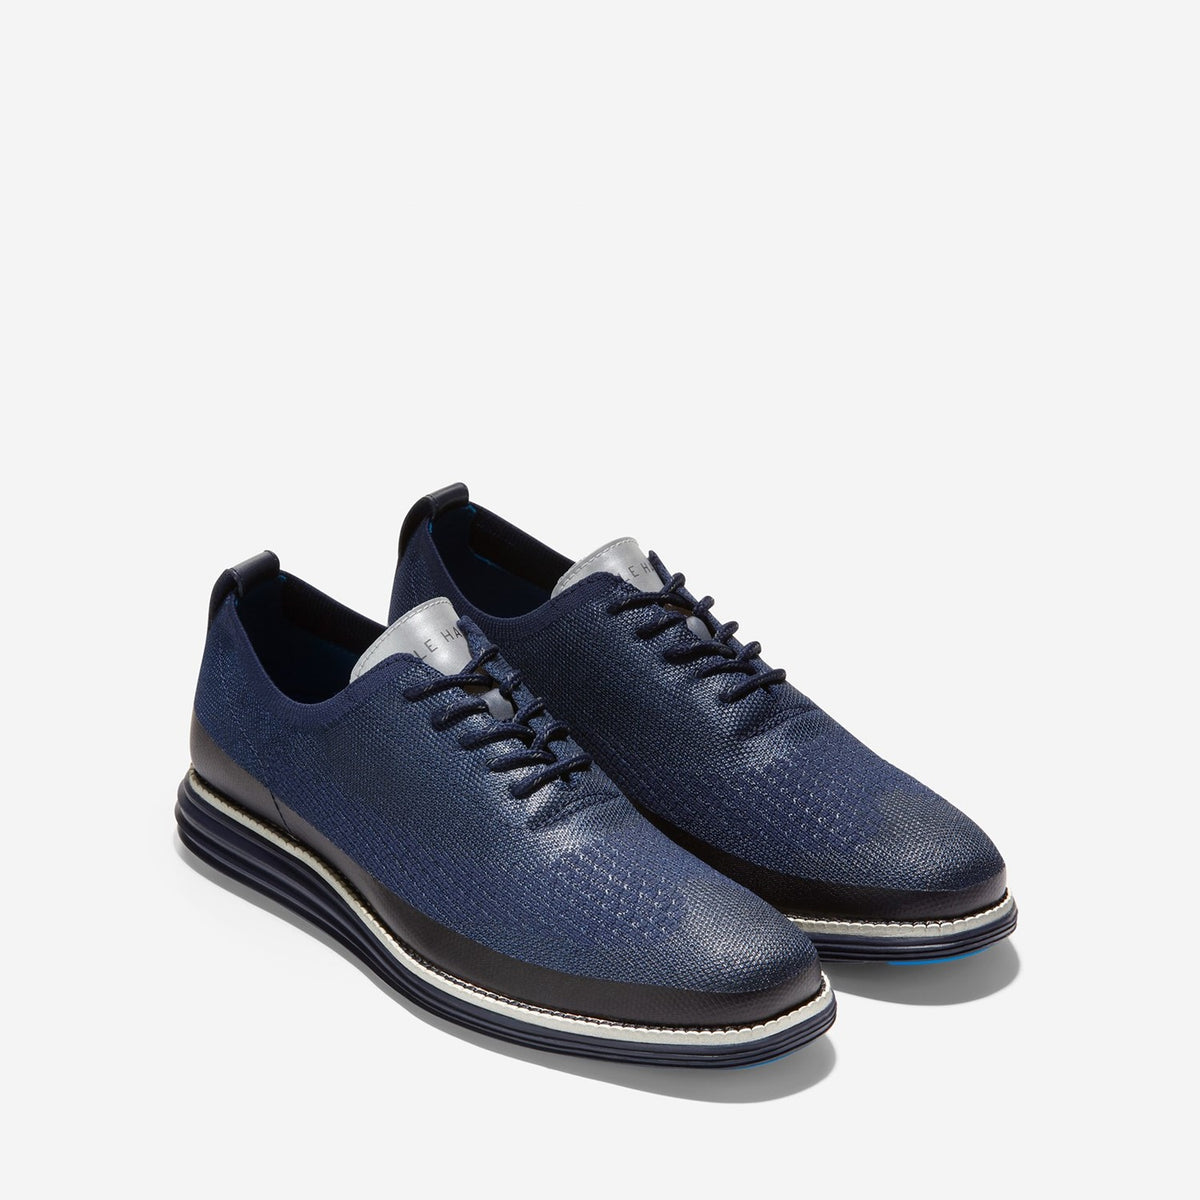 Men's ØriginalGrand Stitchlite Wingtip Oxford Marine Blue Knit/Matte Shine